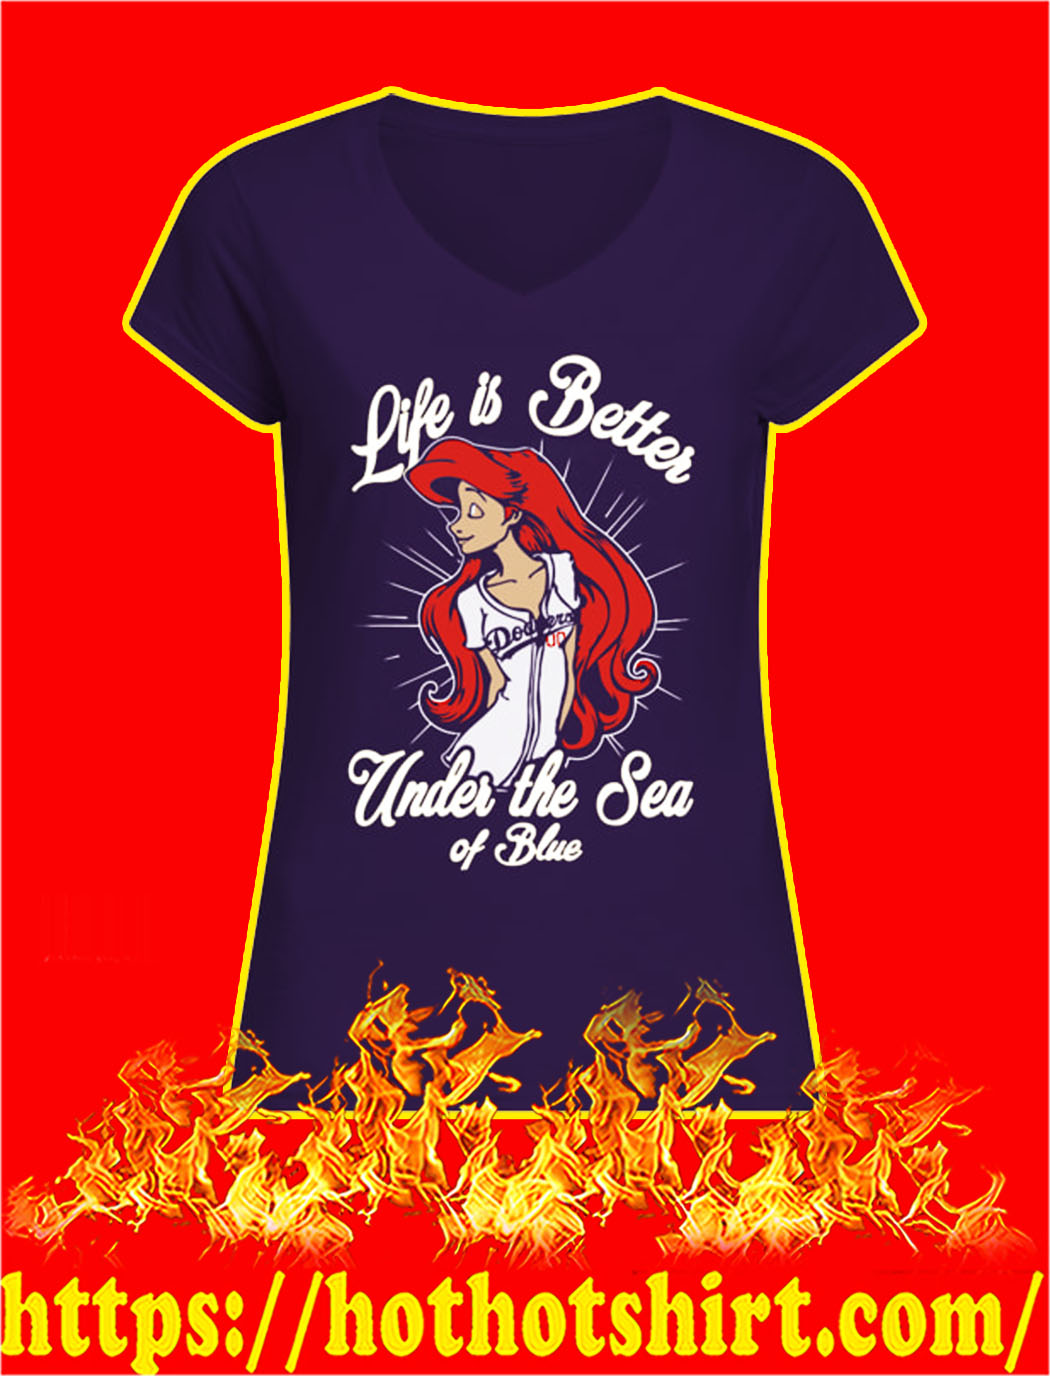 Ariel dodgers life is better under the sea of blue v-neck